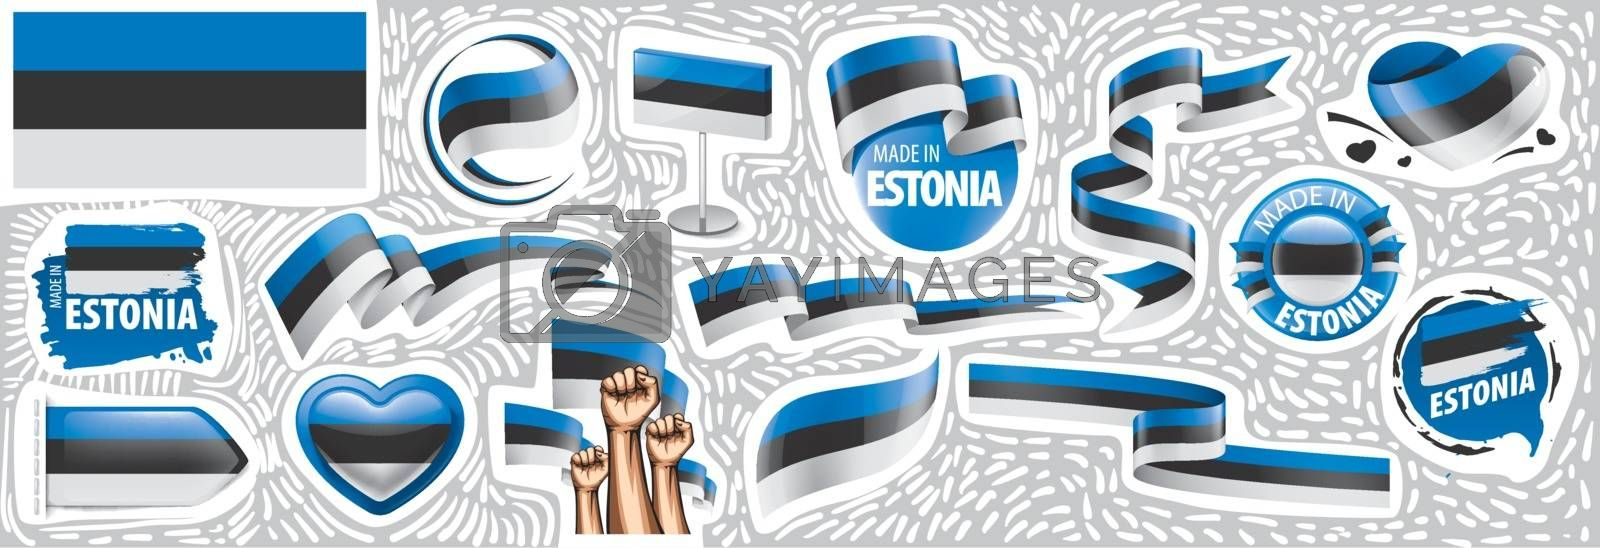 Vector set of the national flag of Estonia in various creative designs.